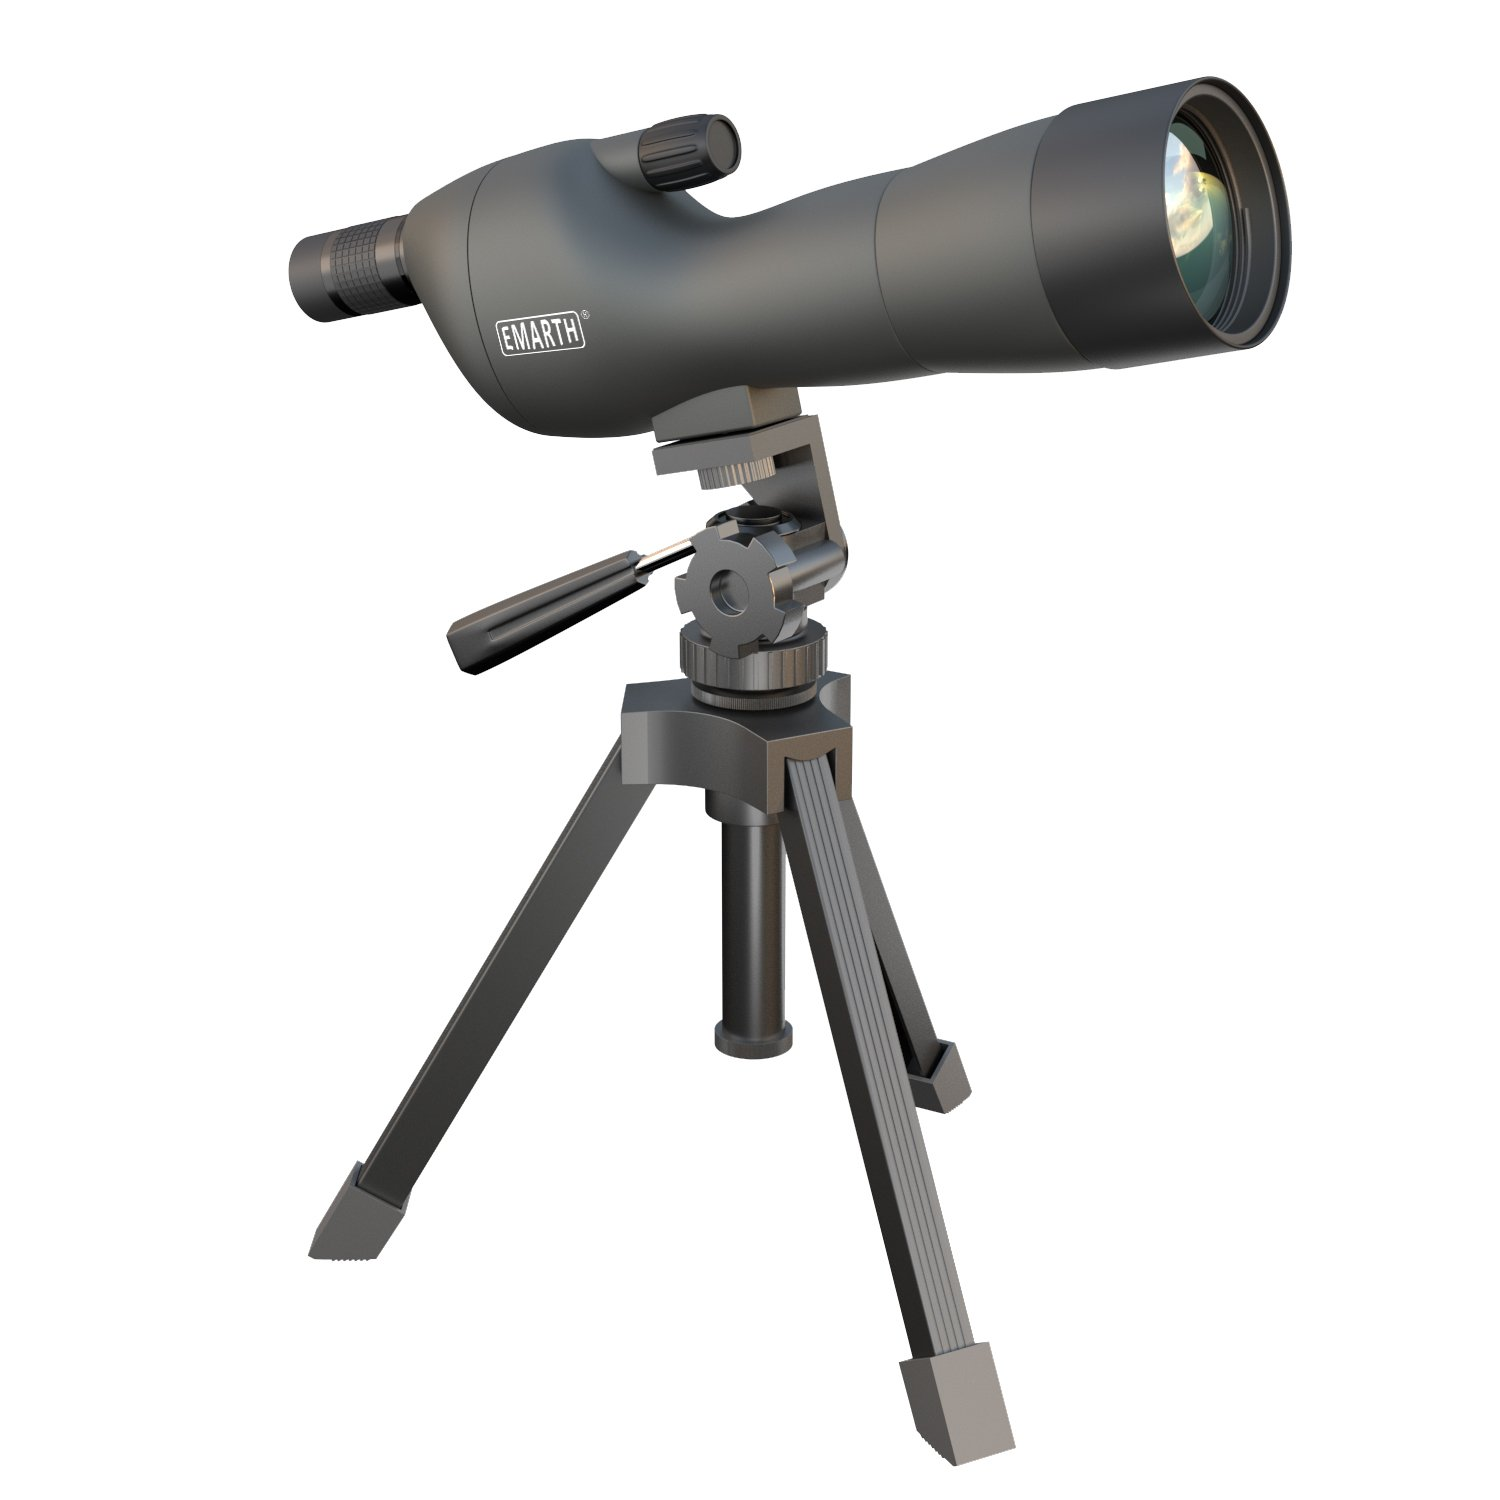 Emarth 20-60x60SE Straight Spotting Scope Telescope with Tripod, Optics Zoom 39-19m/1000m for Target Shooting/Hunting/Bird Watching/Outdoor Activities/Traveling (Army Green) by Emarth